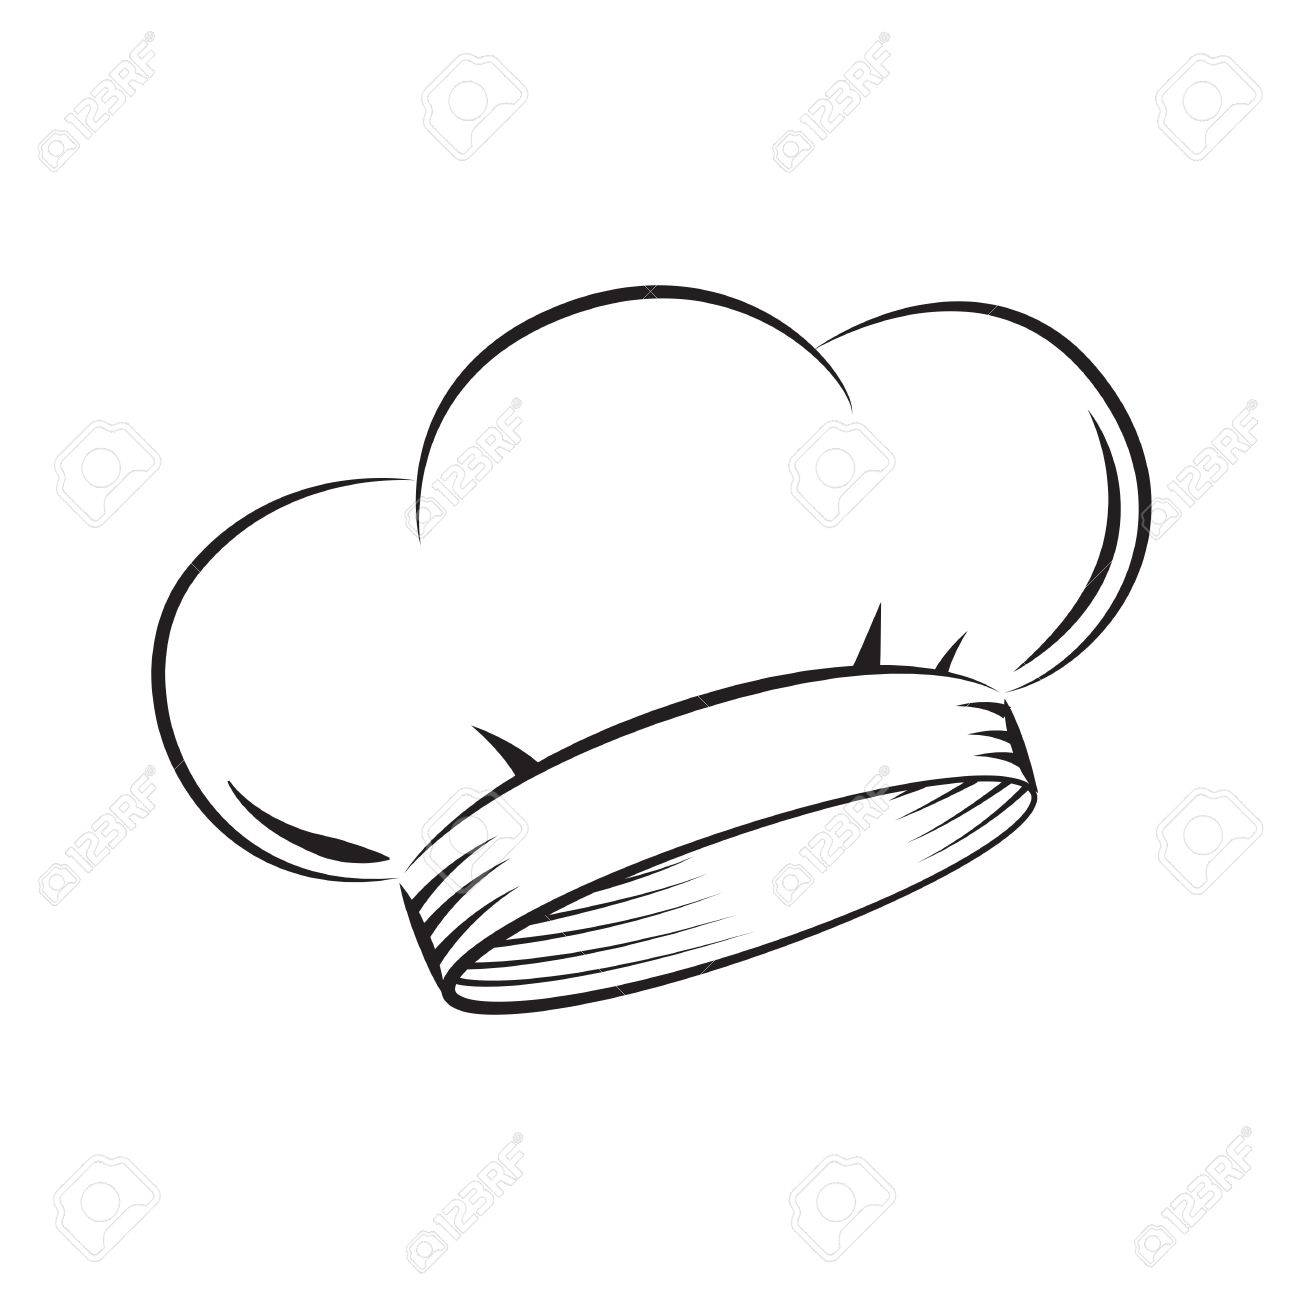 draw chef hat vector royalty free cliparts vectors and stock rh 123rf com Spoon Vector Chef Hat 2000 X 900